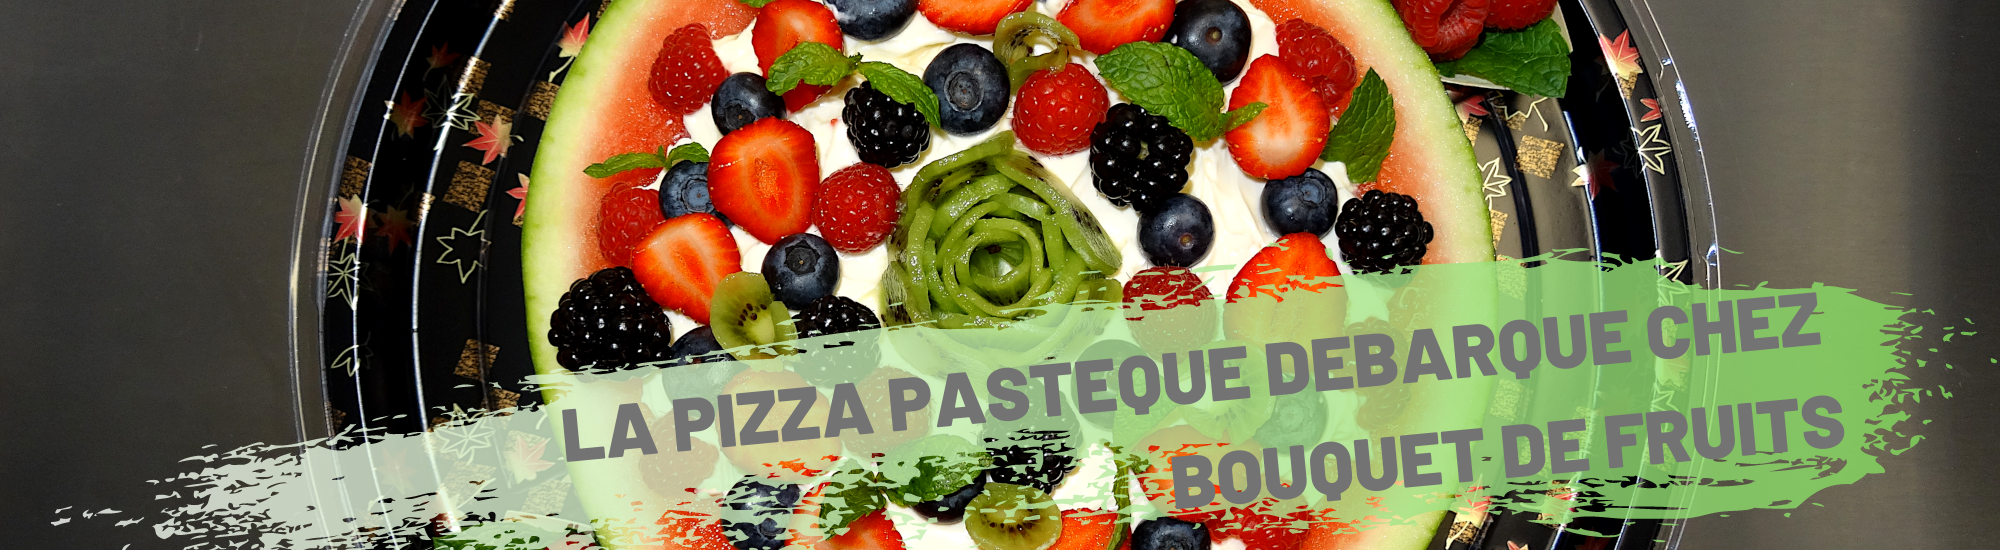 banniere pizza pasteque